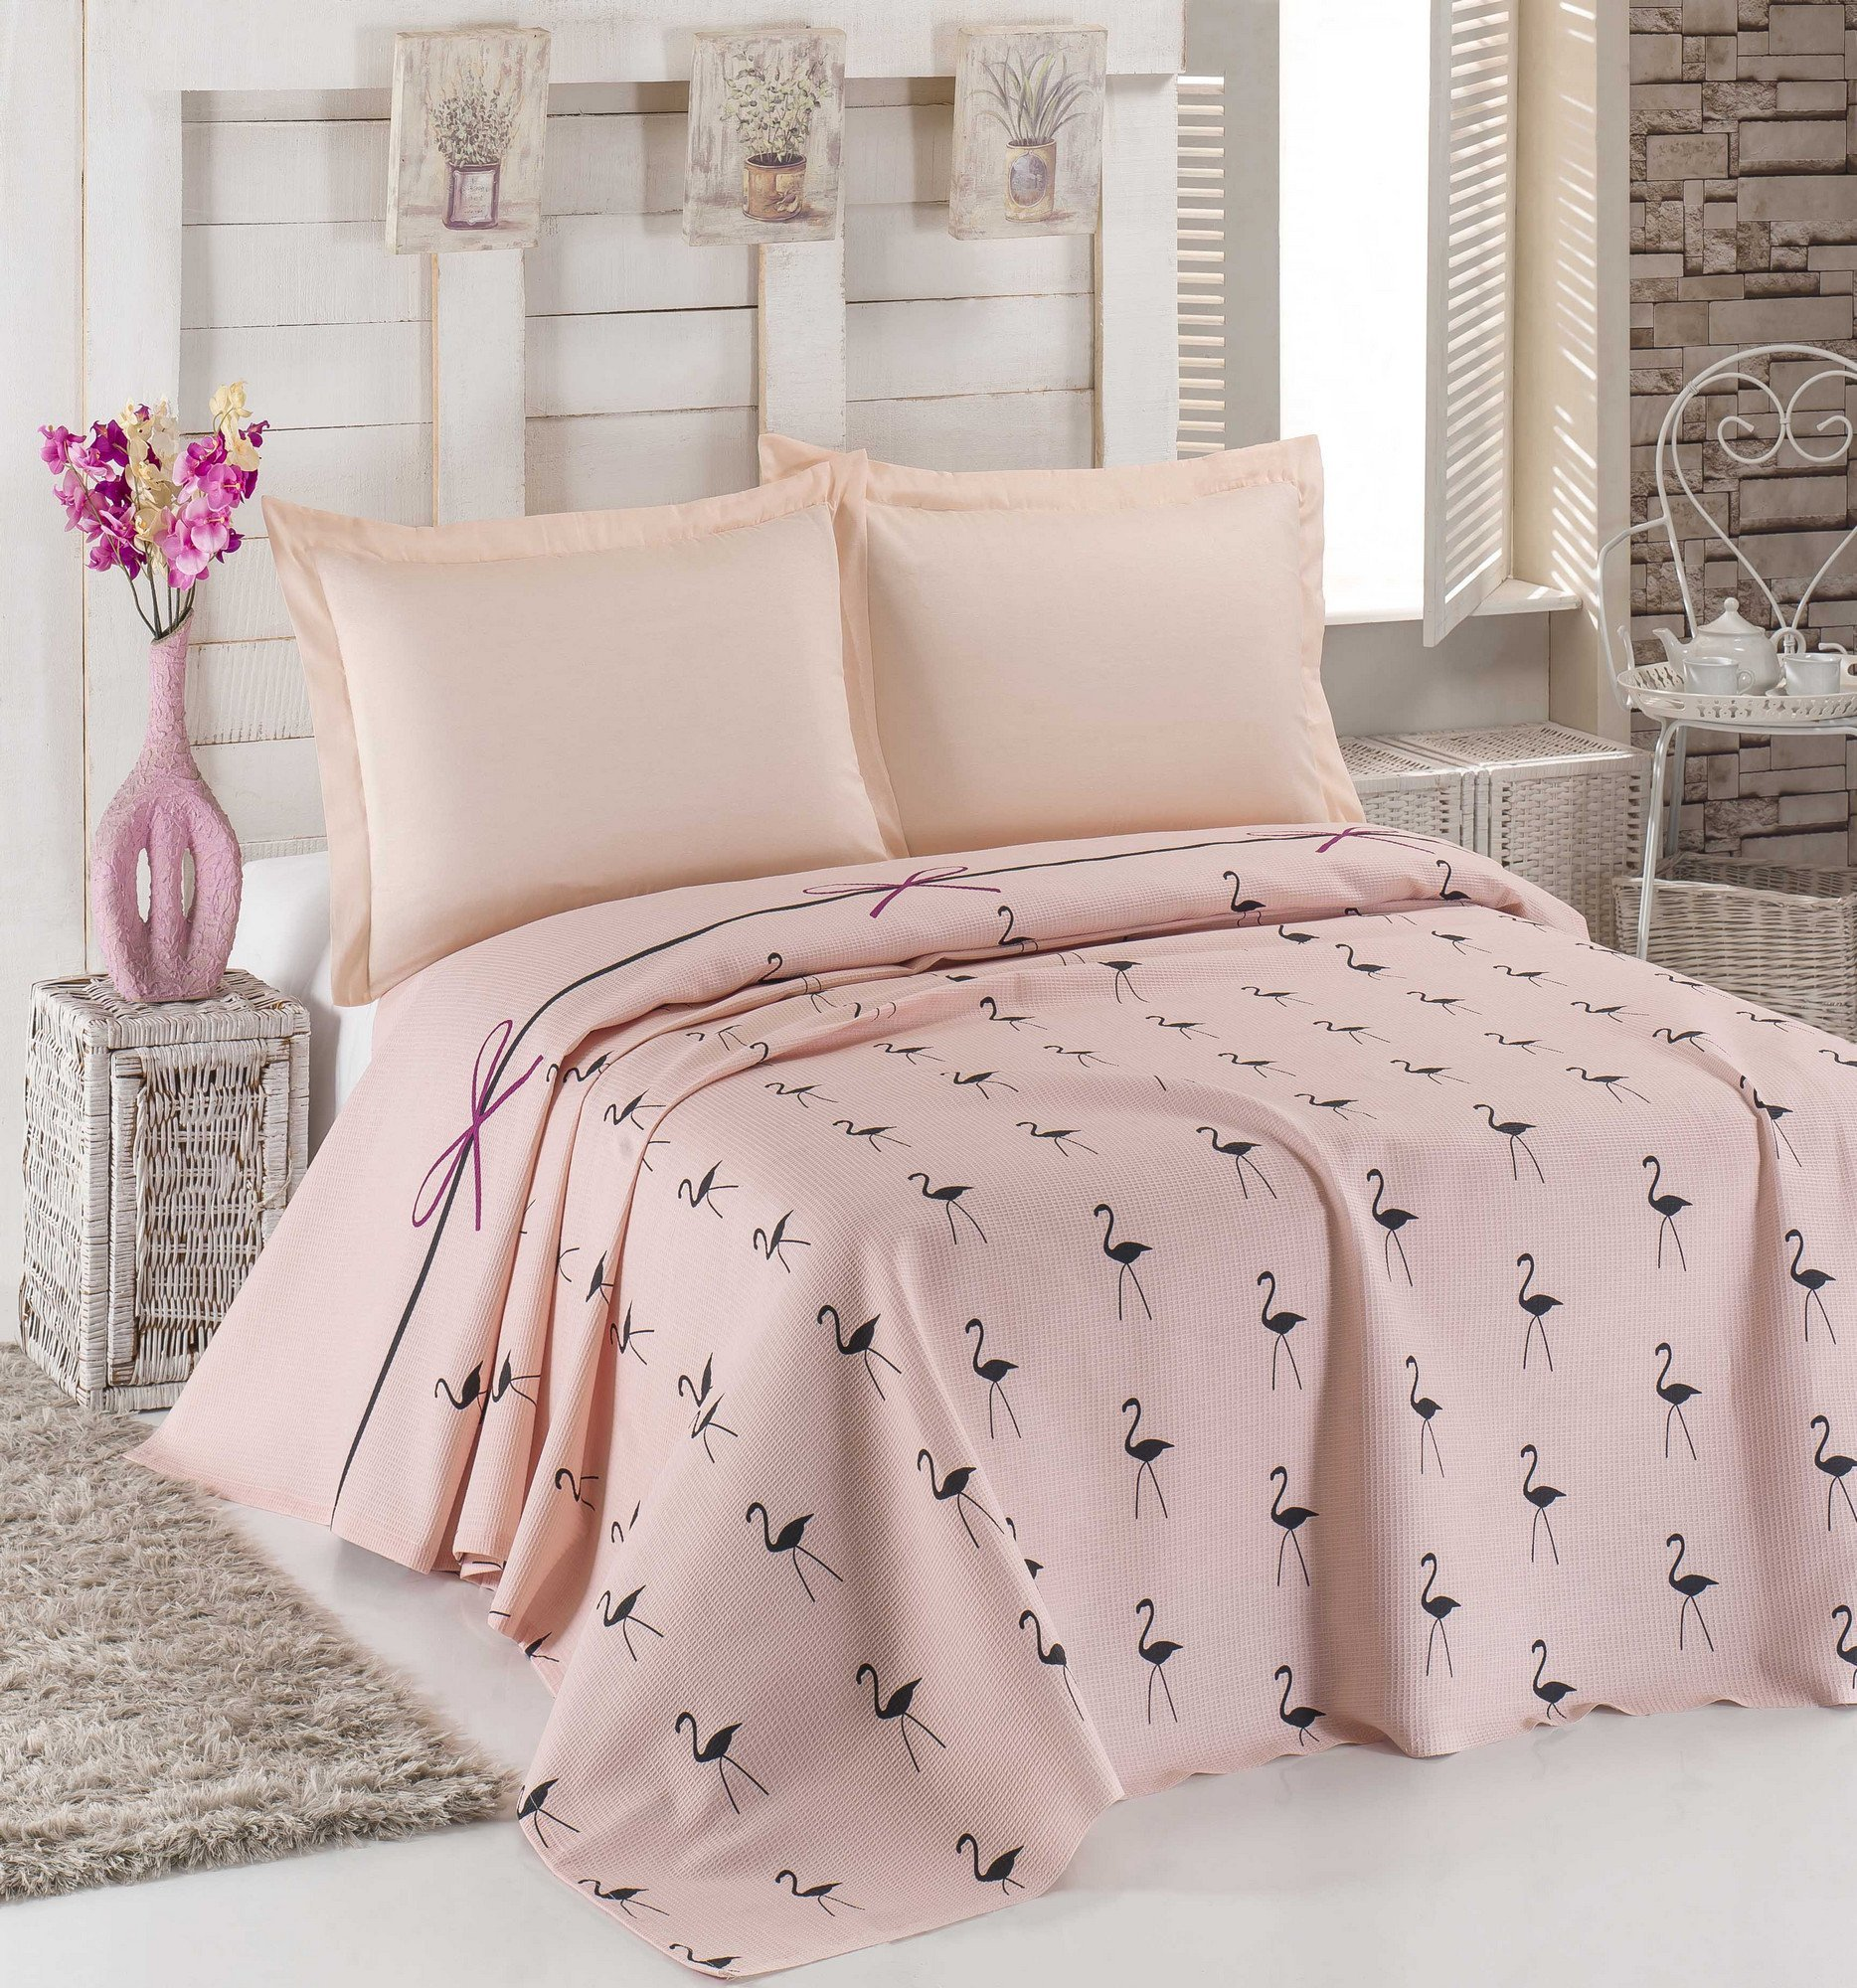 LaModaHome Luxury Soft Colored Bedroom Bedding 100% Cotton Double Coverlet (Pique) Thin Coverlet Summer/Flamingo Line Rope Bowtie Animal Pink Background/Double